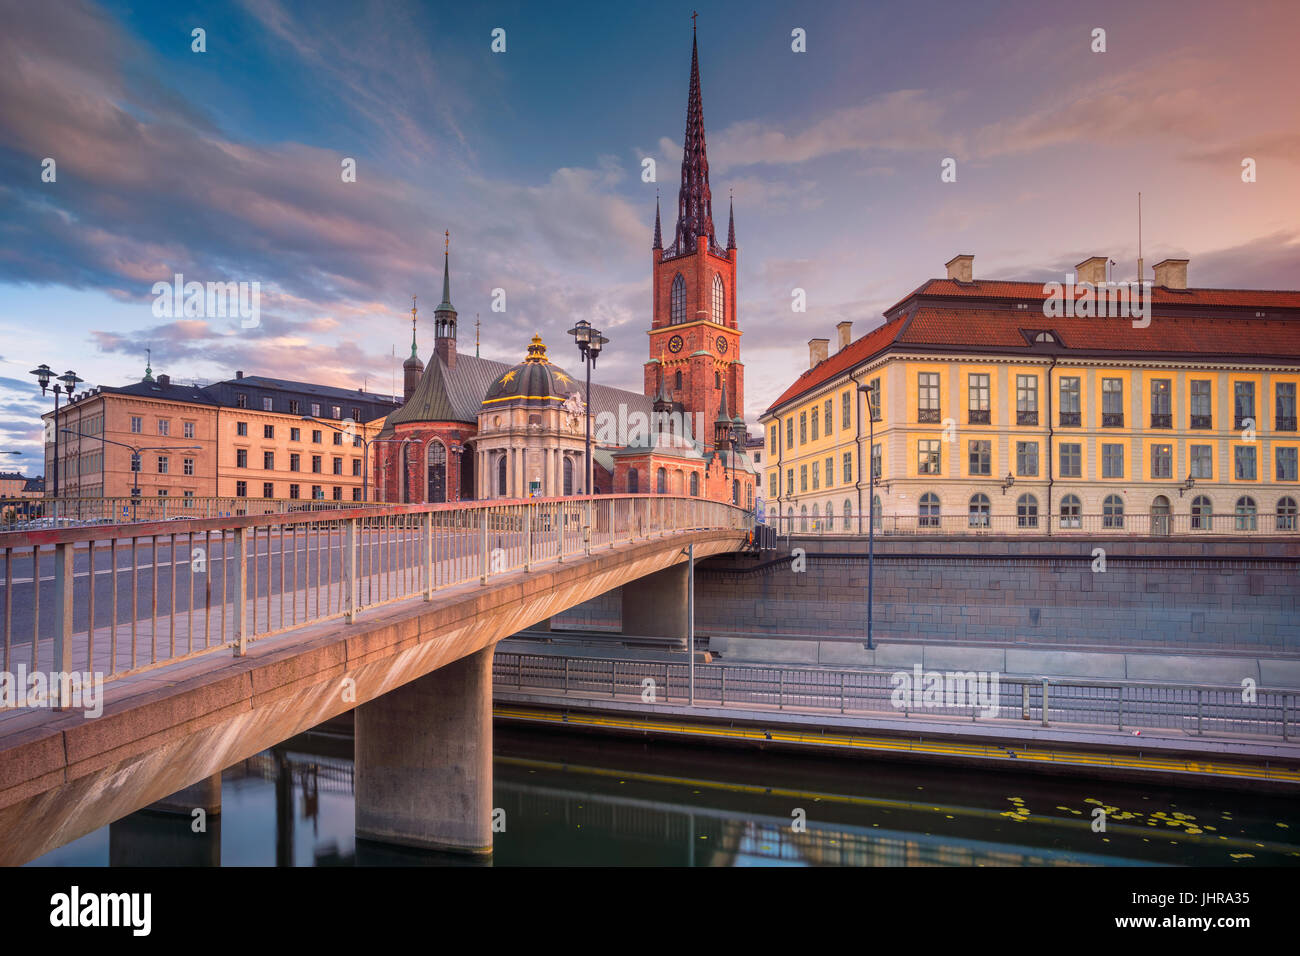 Stockholm. Image of old town Stockholm, Sweden during sunset. Stock Photo